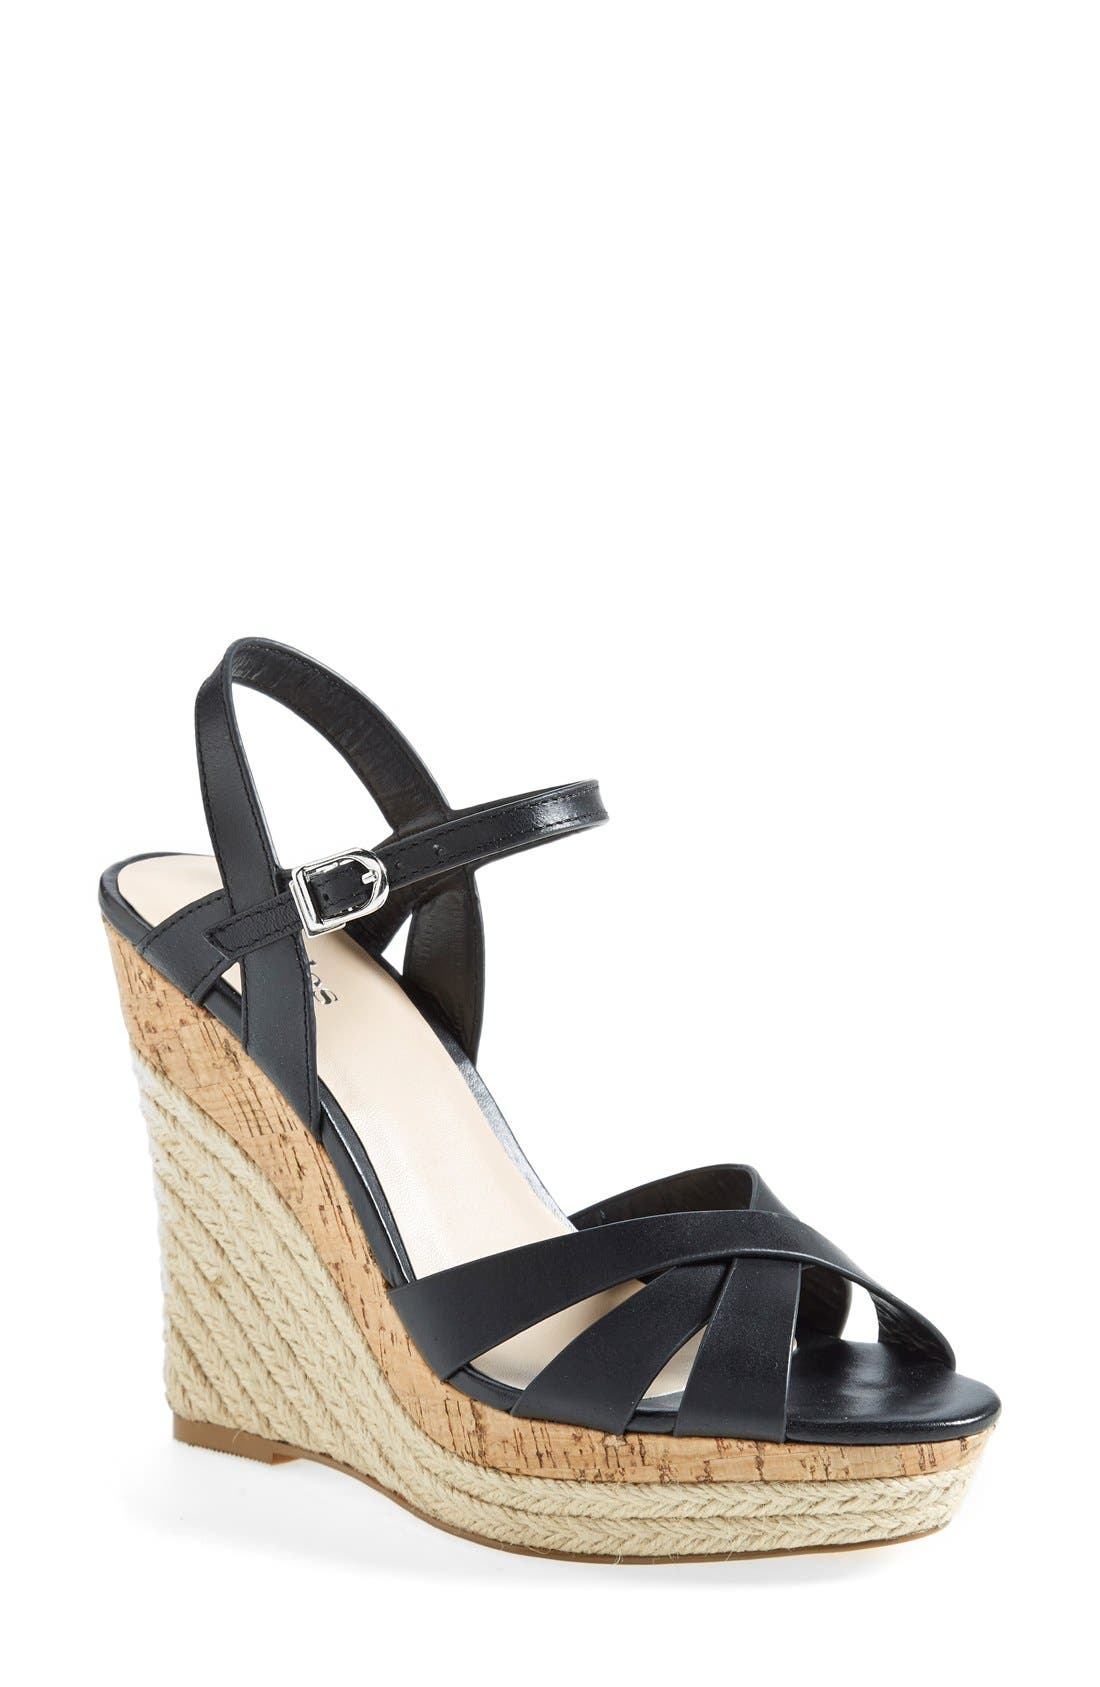 CHARLES BY CHARLES DAVID 'Astro' Espadrille Sandal, Main, color, 001